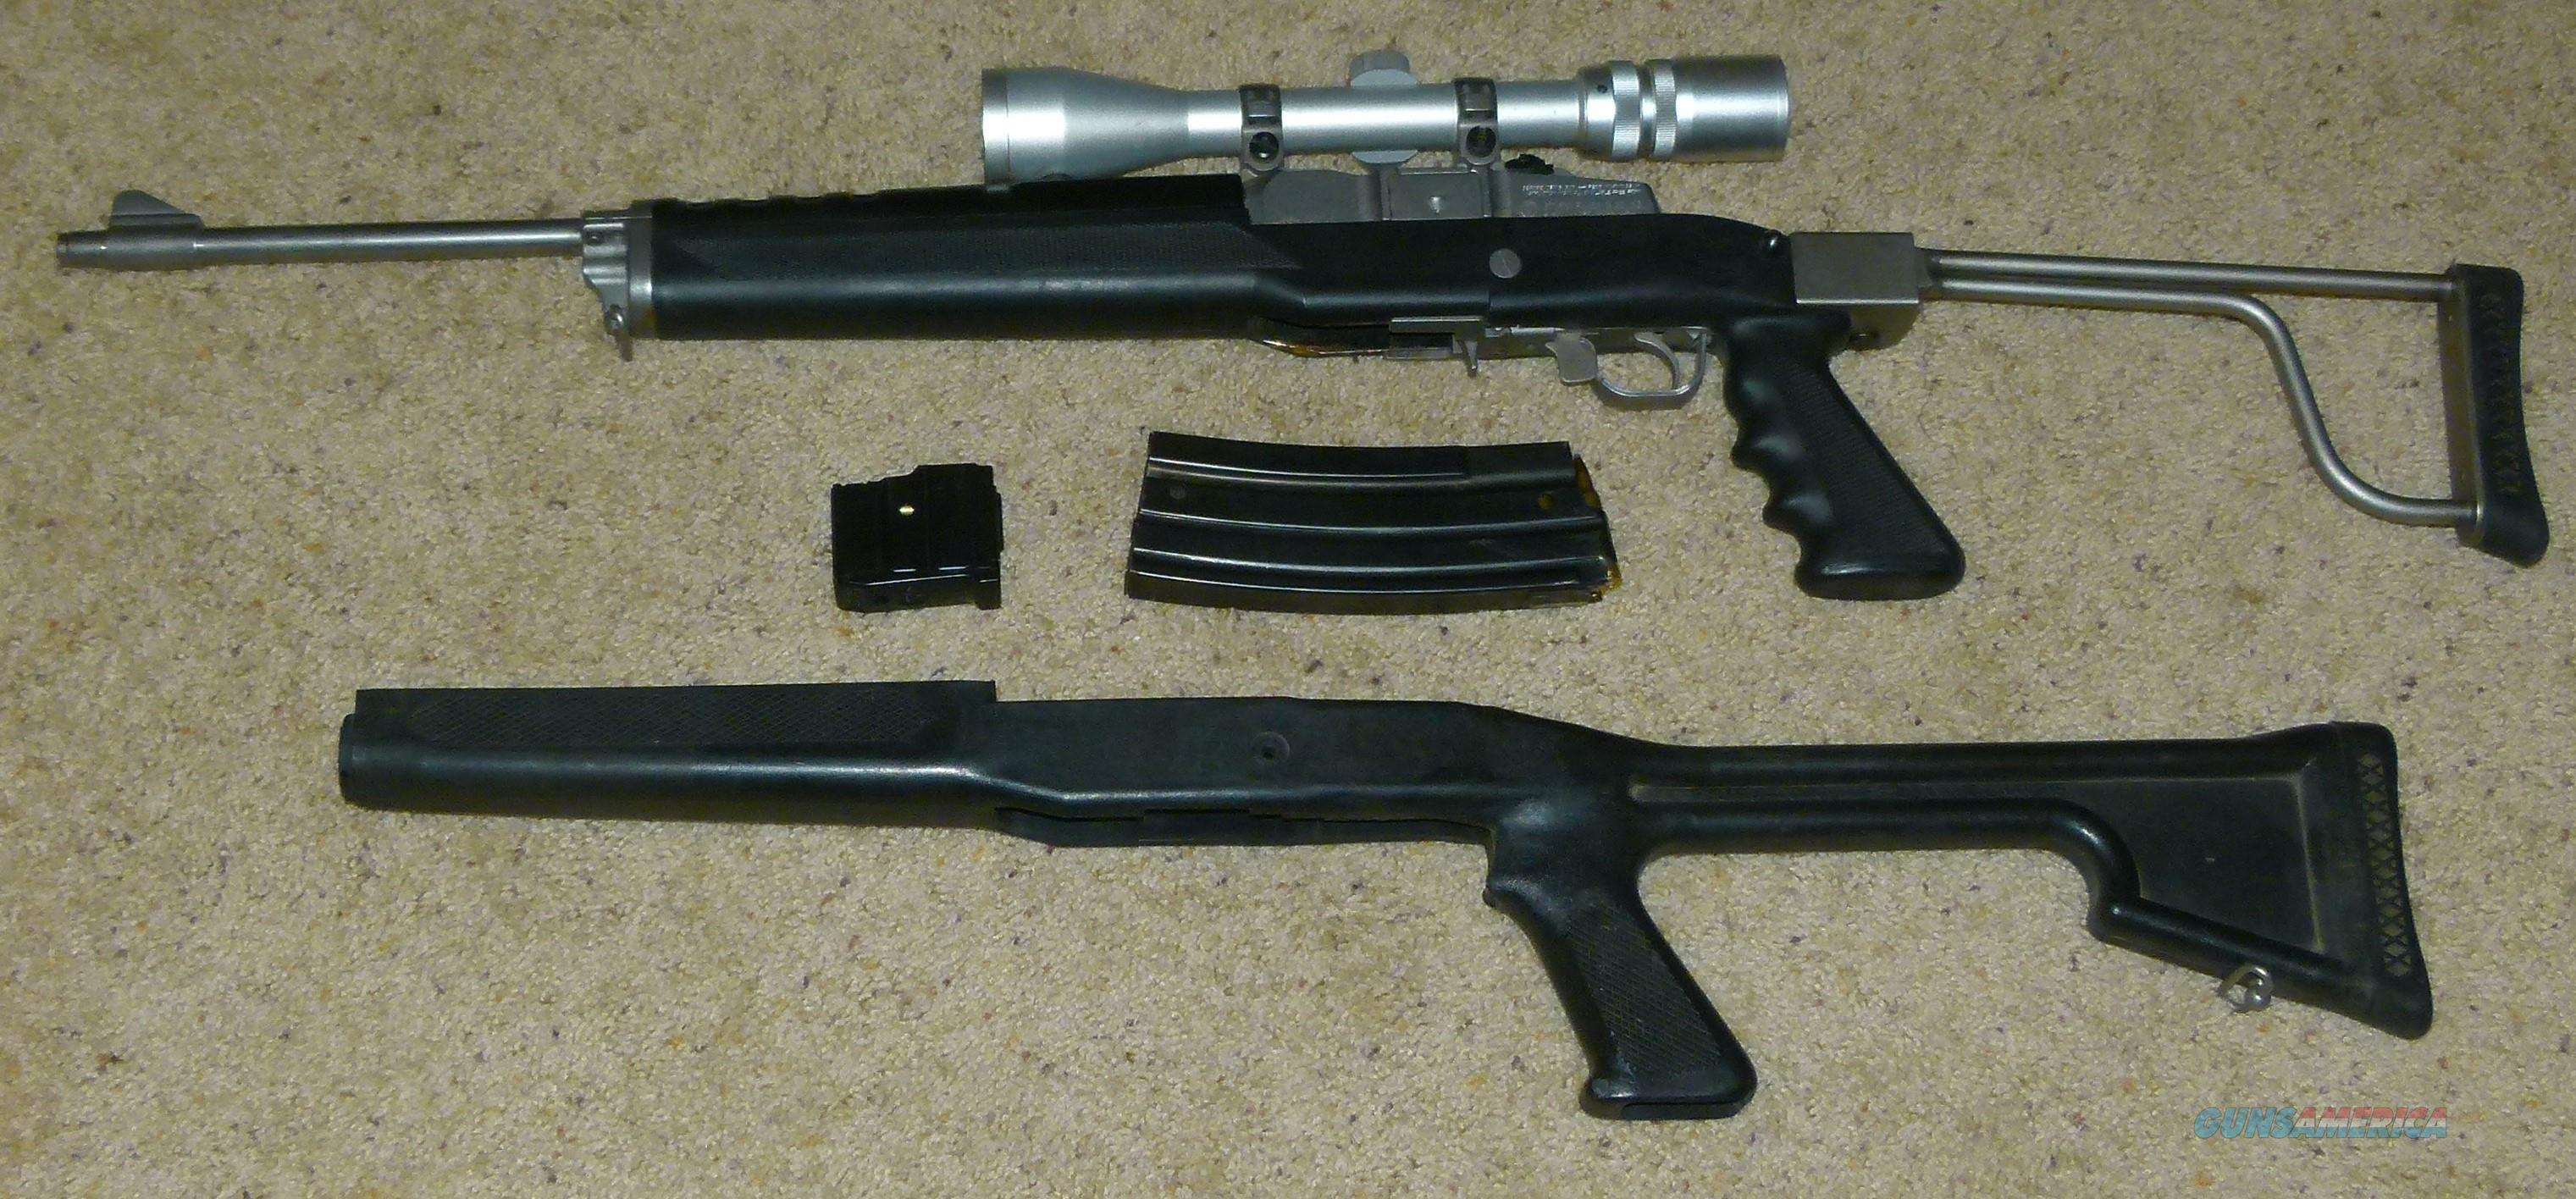 Stainless Mini 14 in .223 with Stainless scope-REDUCED  Guns > Rifles > Ruger Rifles > Mini-14 Type